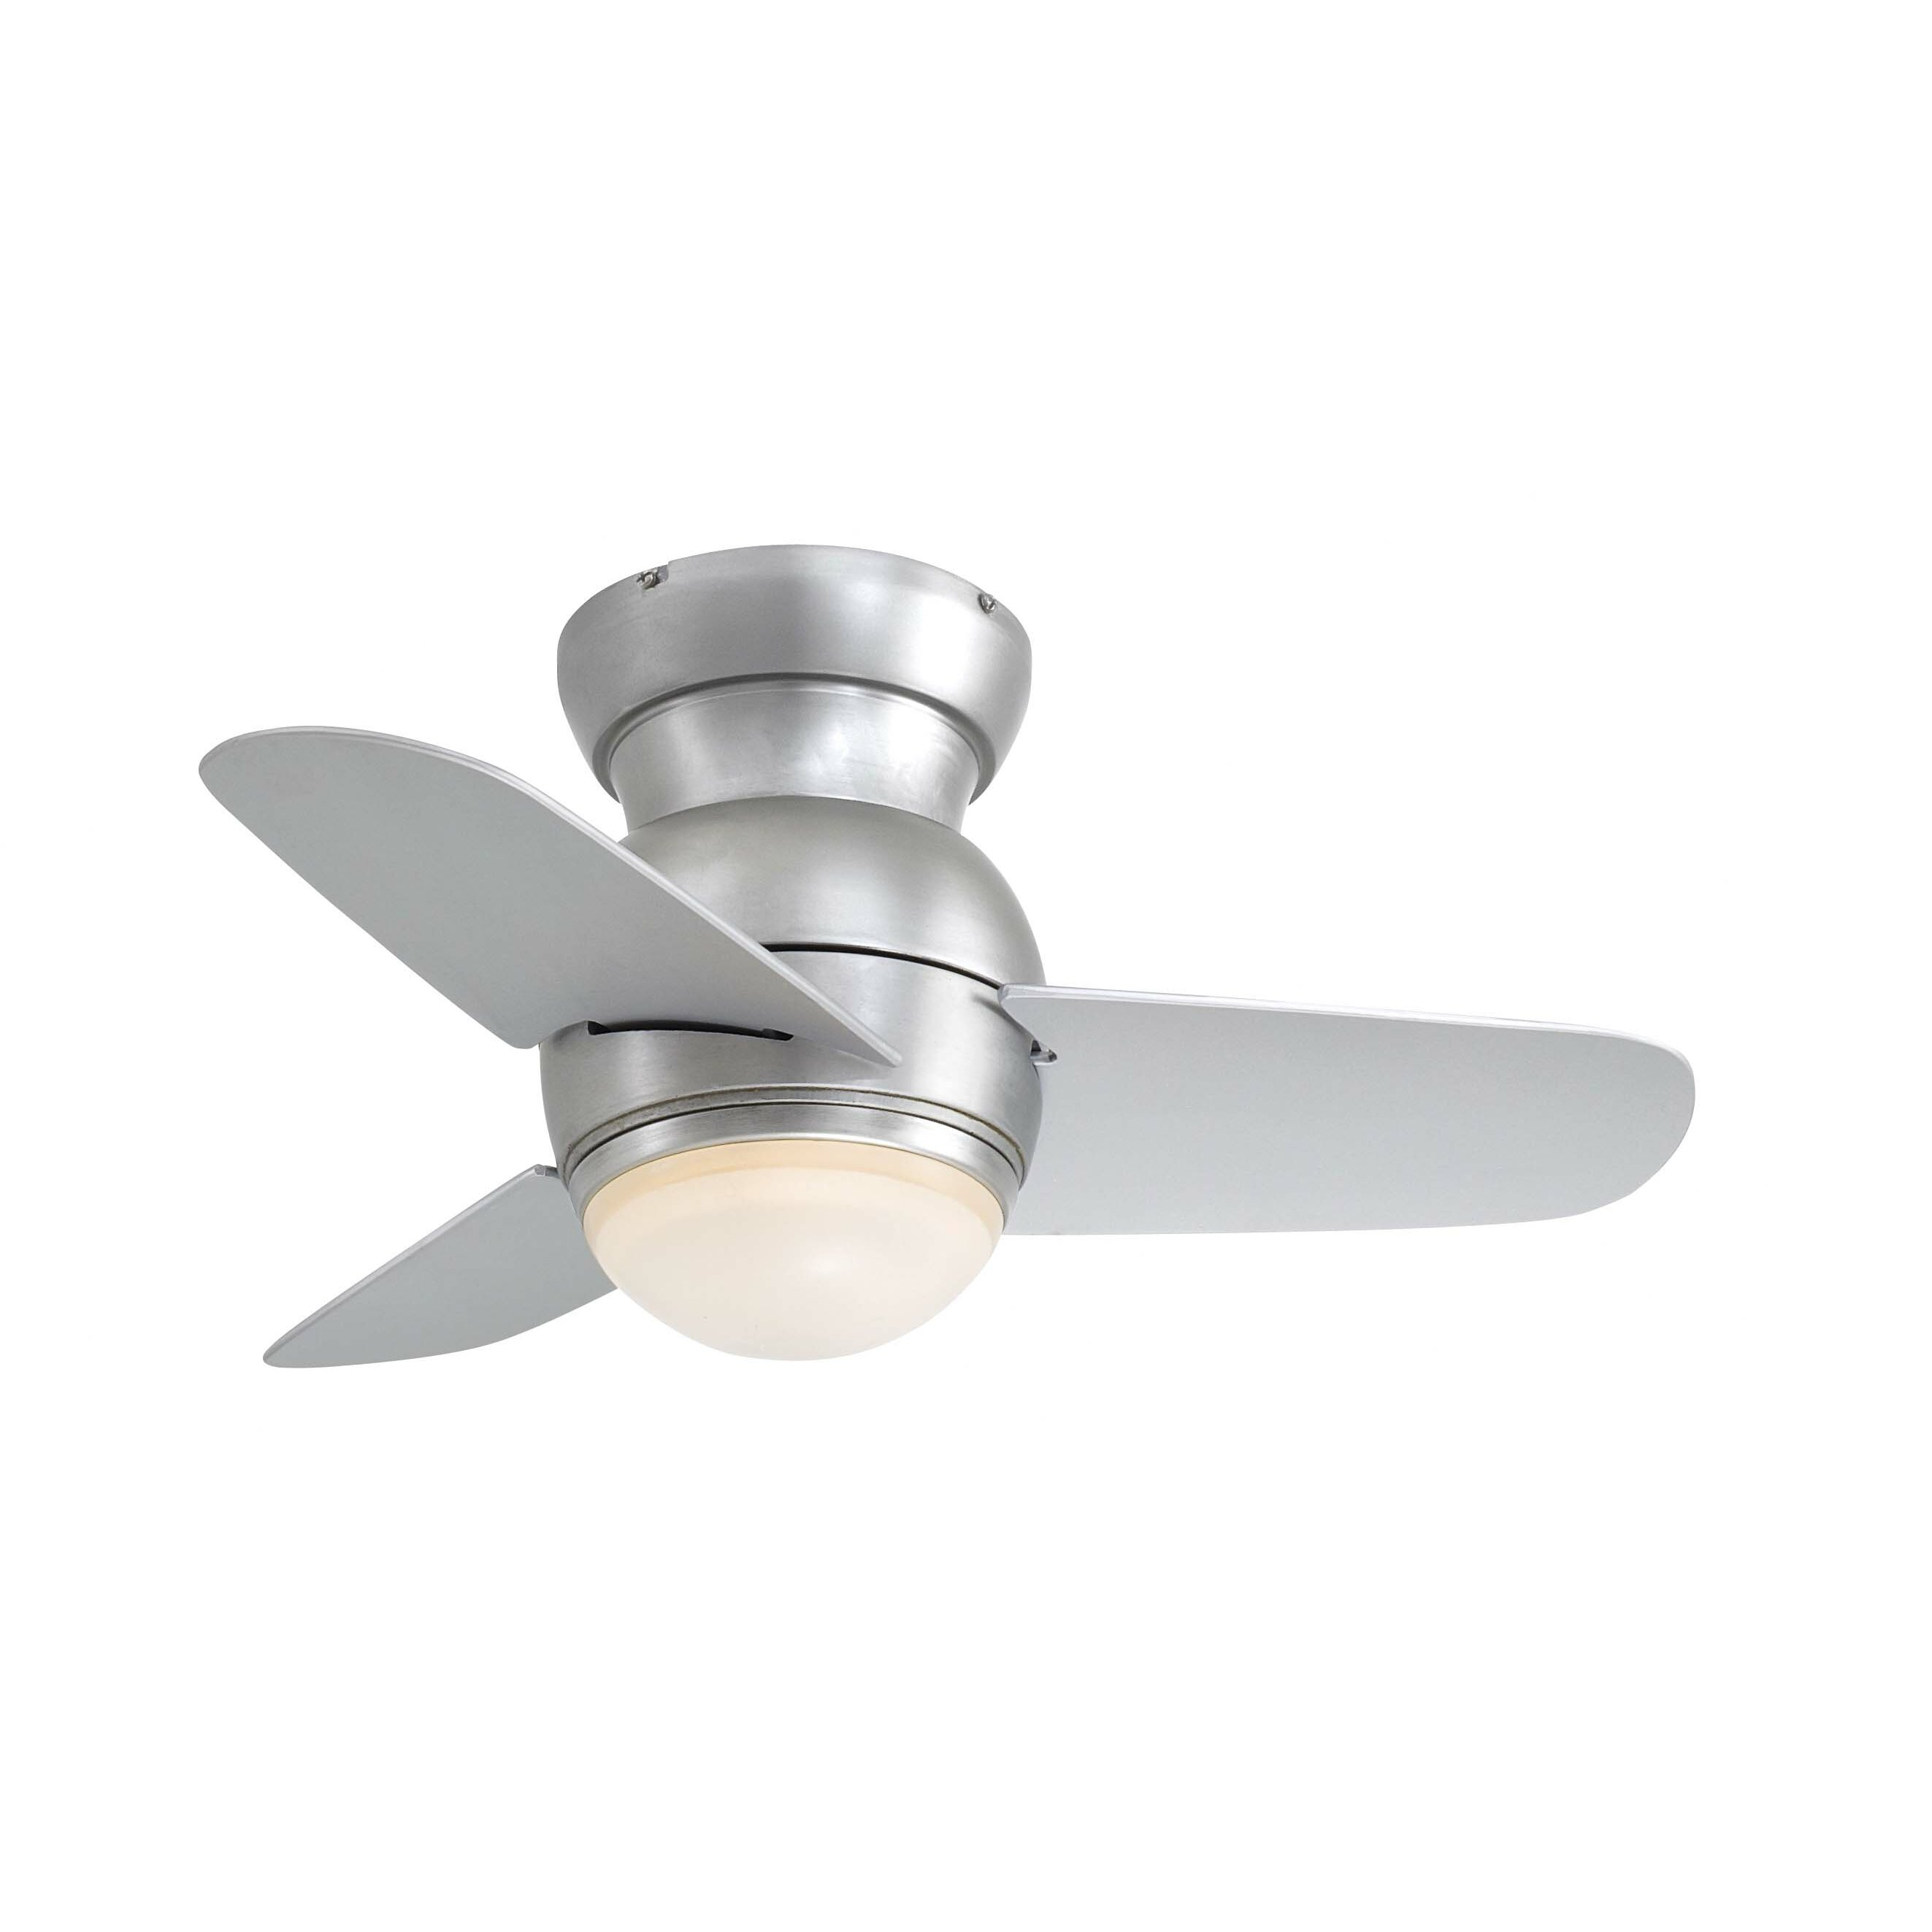 Minka Aire 26 Spacesaver Flush Mount 3 Blade Ceiling Fan